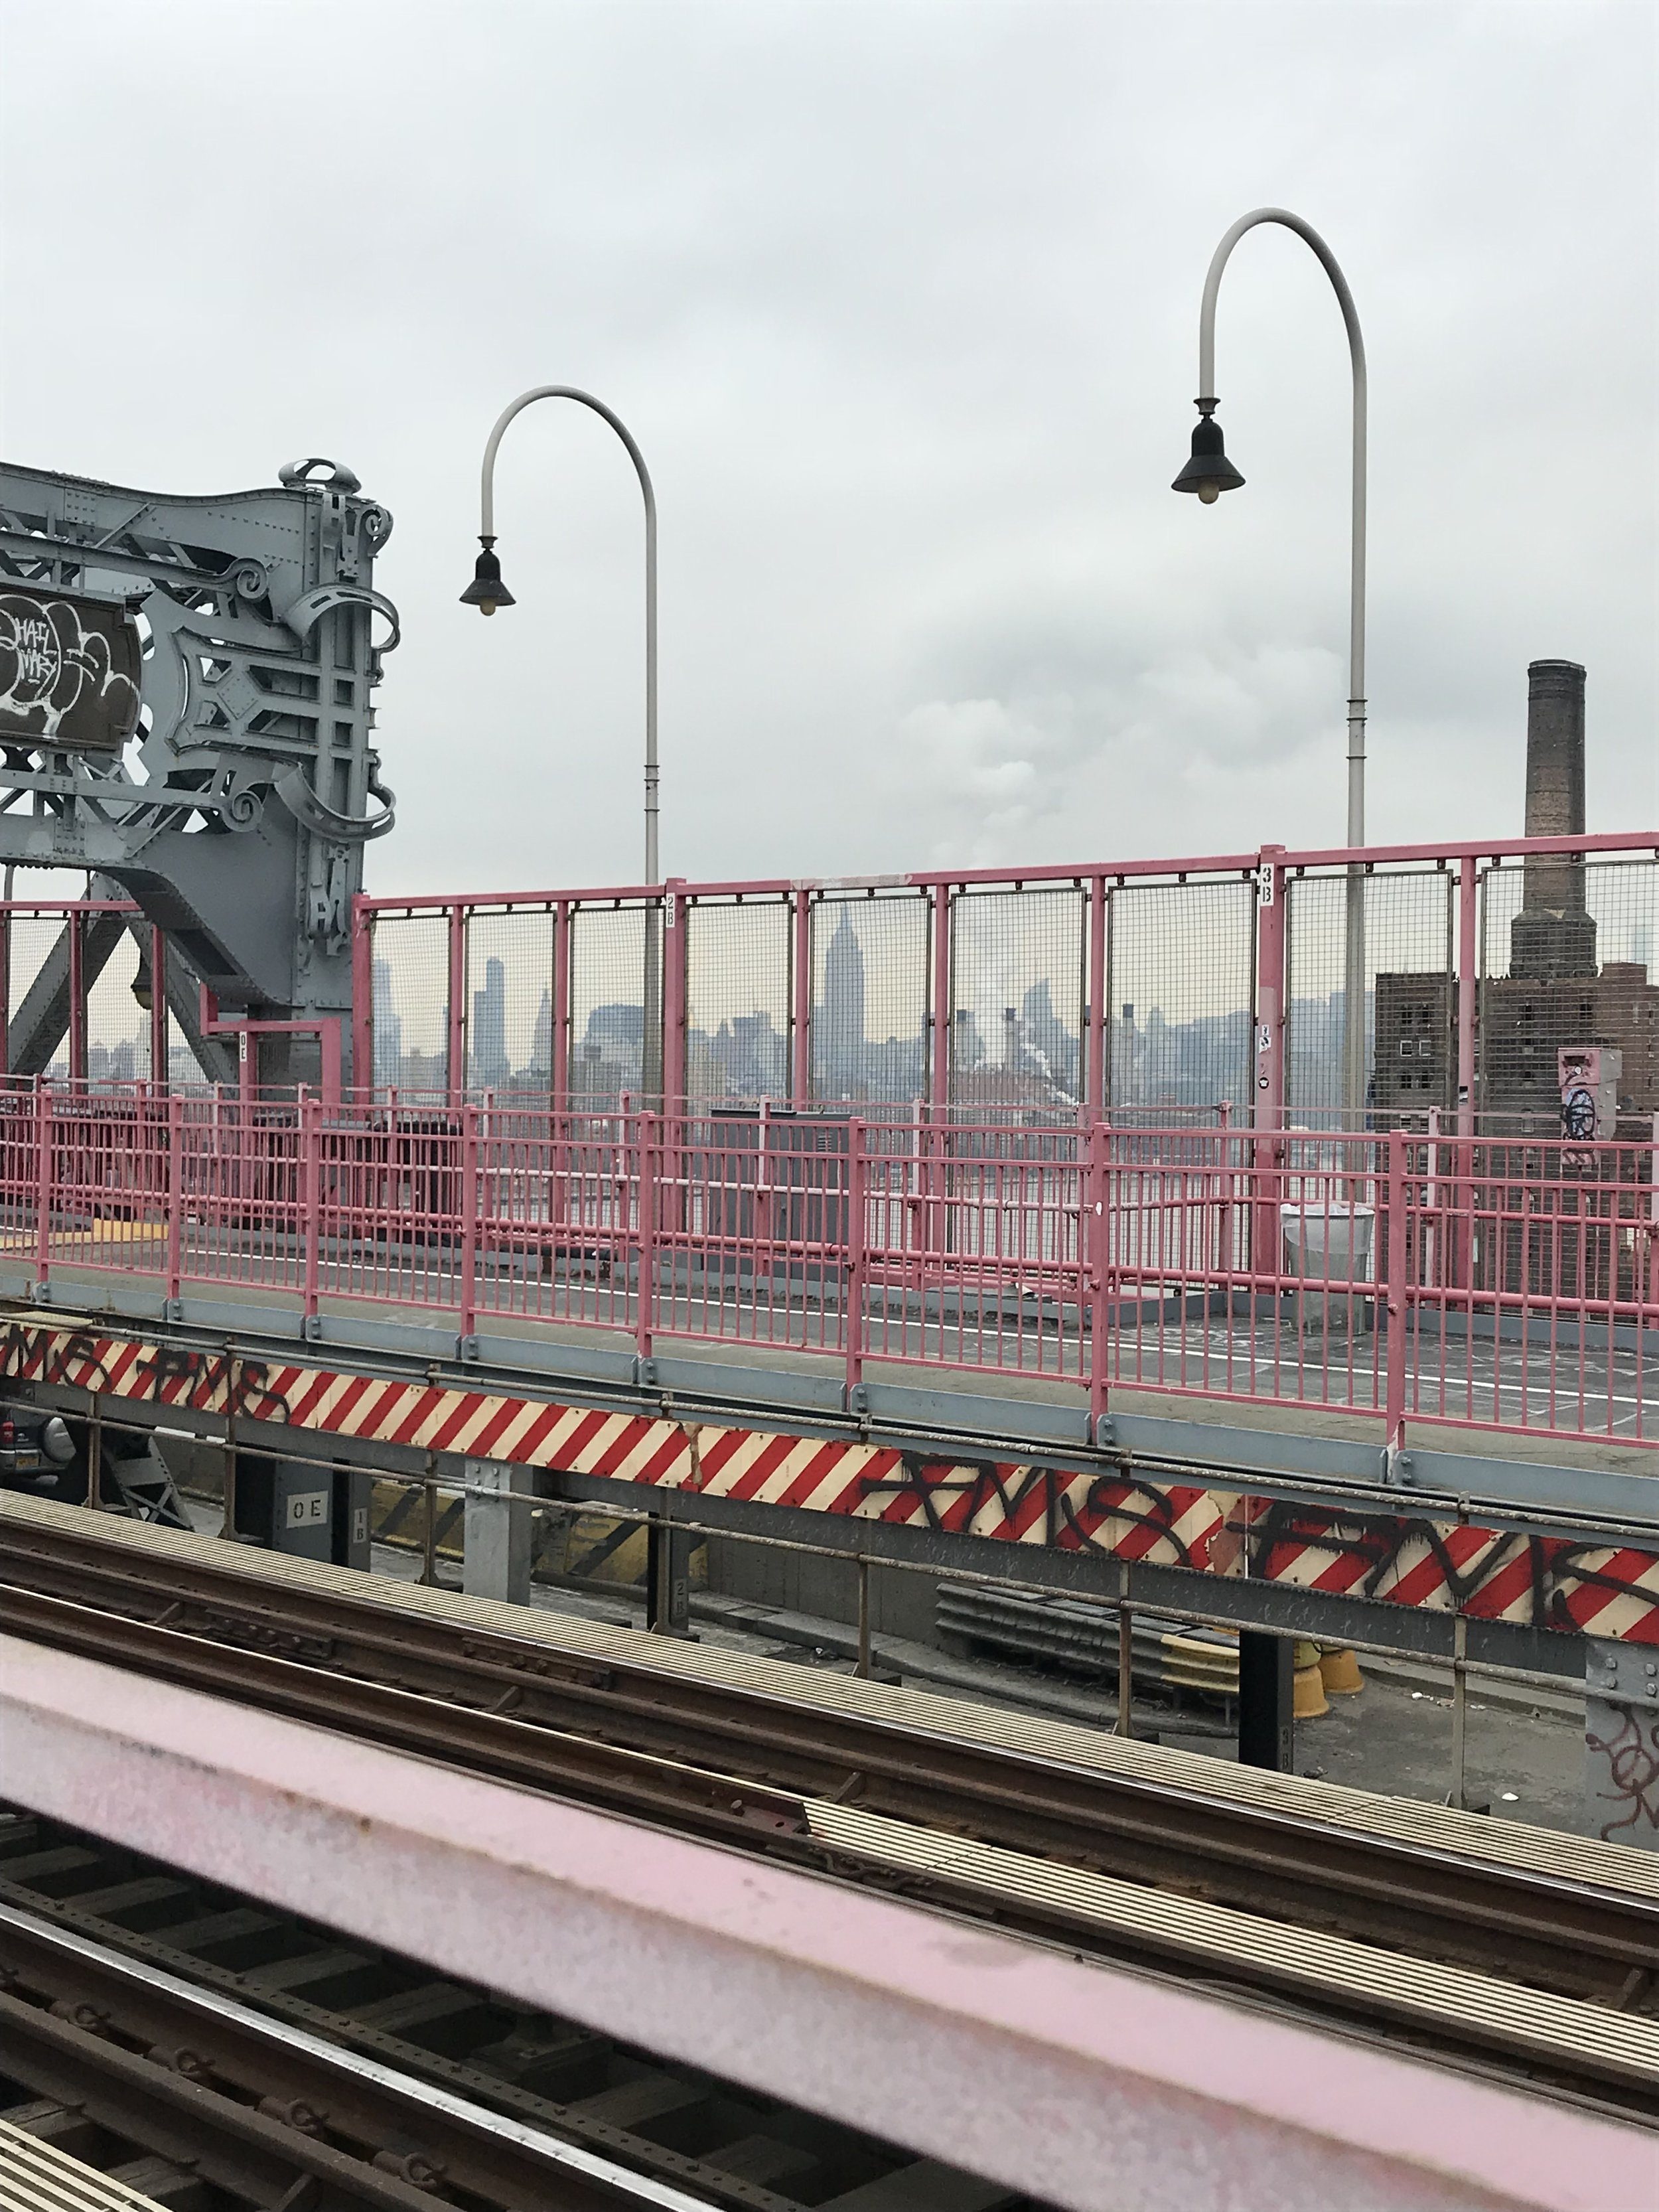 ISSA PINK BRIDGE, Y'ALL. I absolutely love the Williamsburg bridge. I started walking on it with no intention of crossing the entire thing (1.384 mi)but I figured I had nothing else to do and why not it was so cool. I just felt so inspired while walking on it. Here I was, walking the coolest bridge in NY and it felt like in that moment anything in life was possible. Cheesy, corny, whatever you want to call it. But it was a surreal feeling.